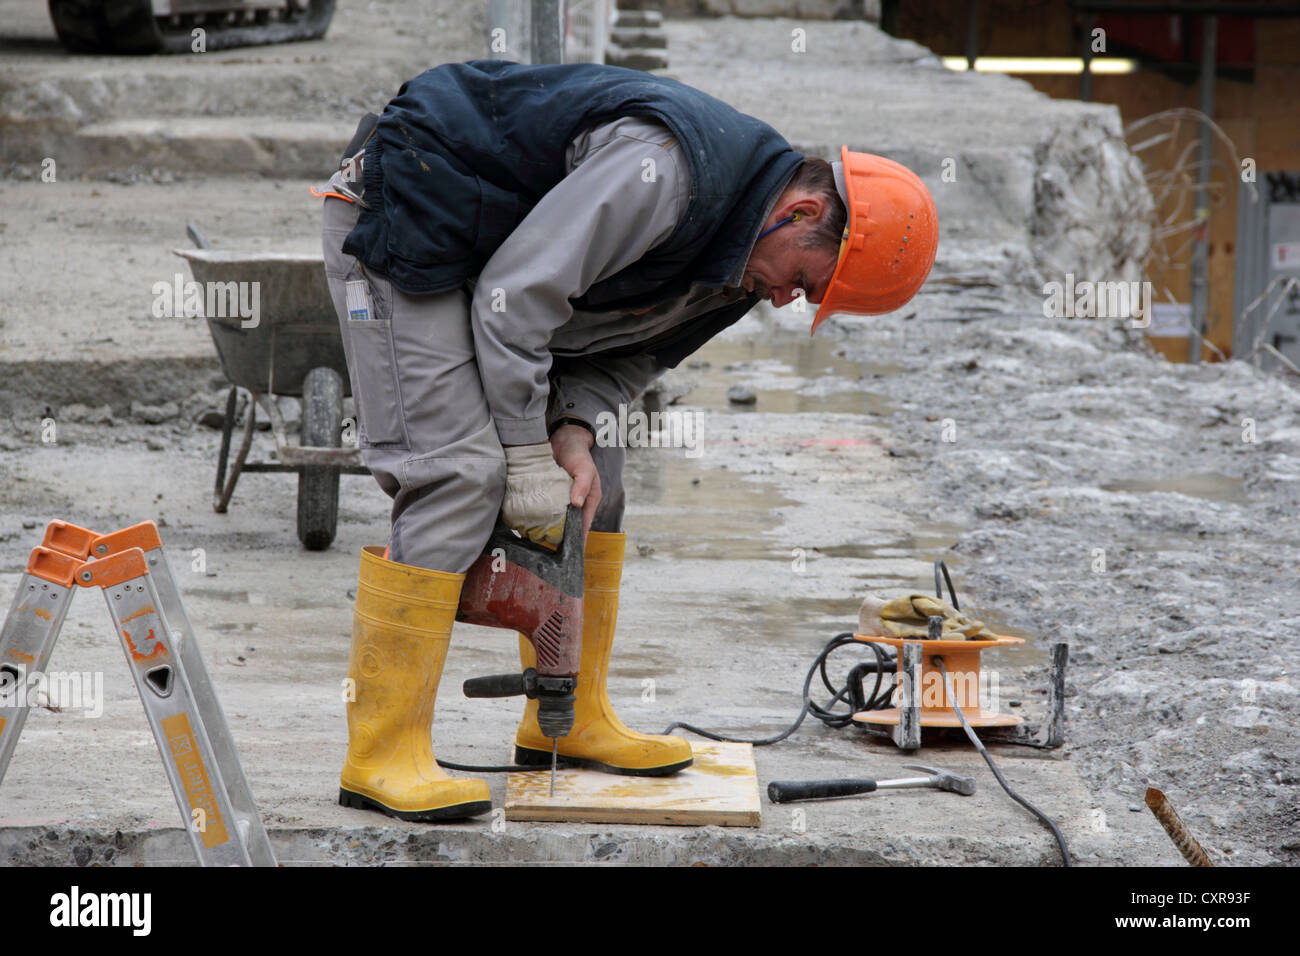 Construction worker drilling a hole into a concrete slab ...  Construction wo...